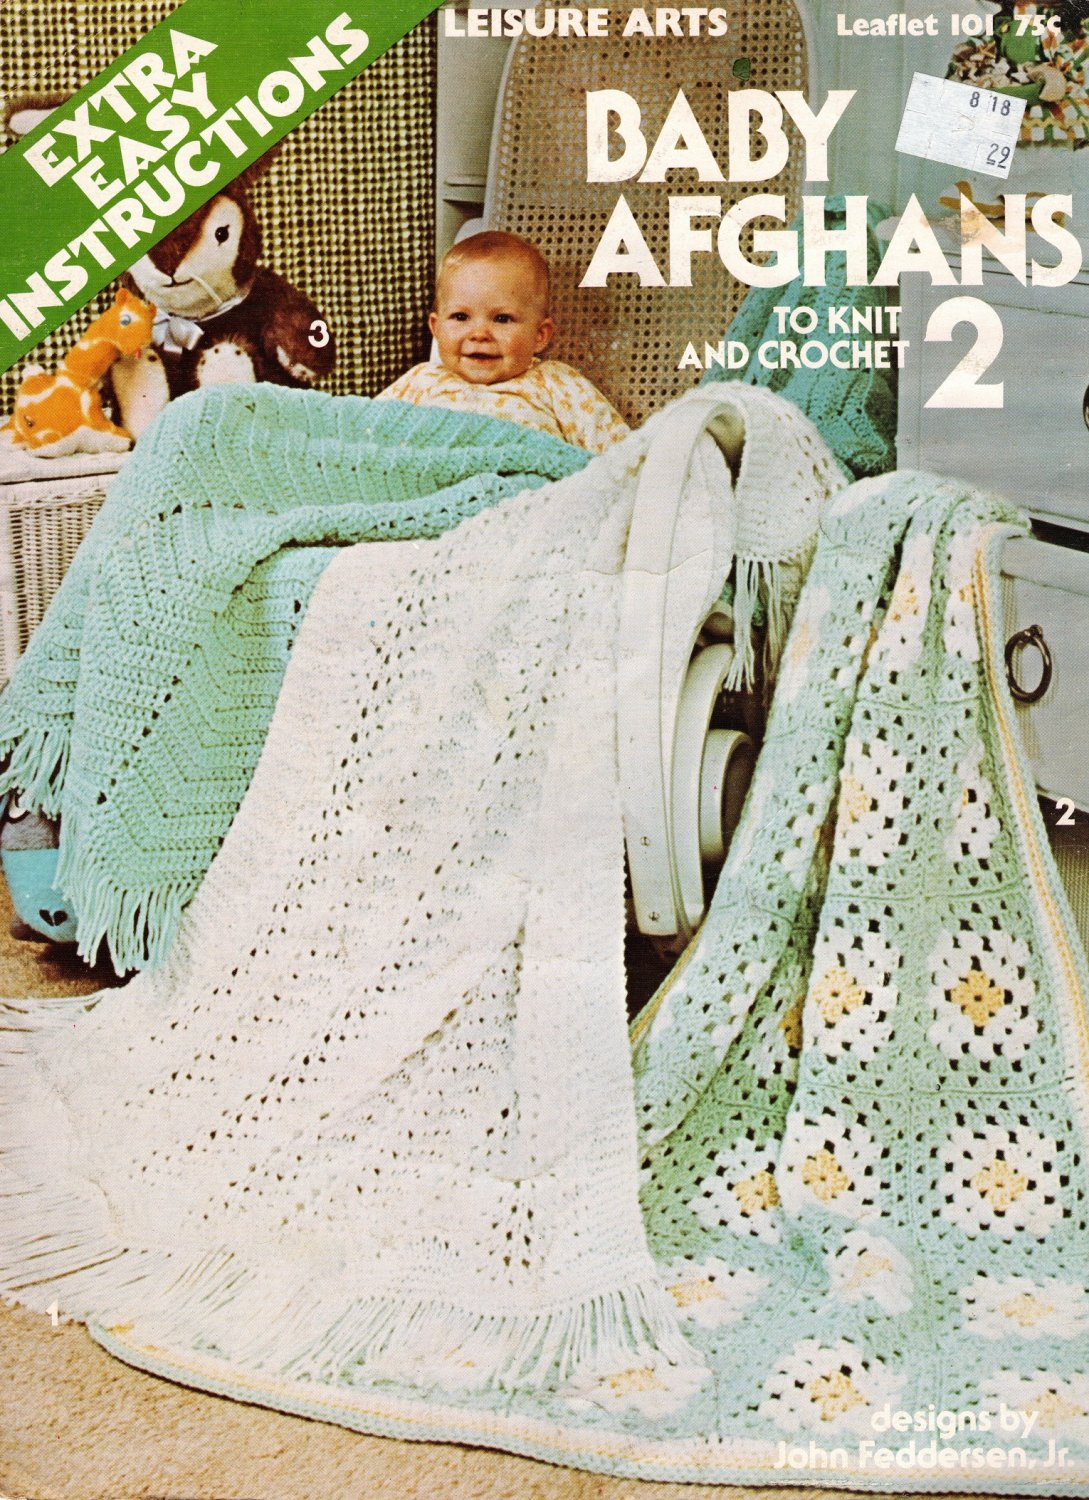 Baby Afghans To Knit And Crochet 2 Leisure Arts 101